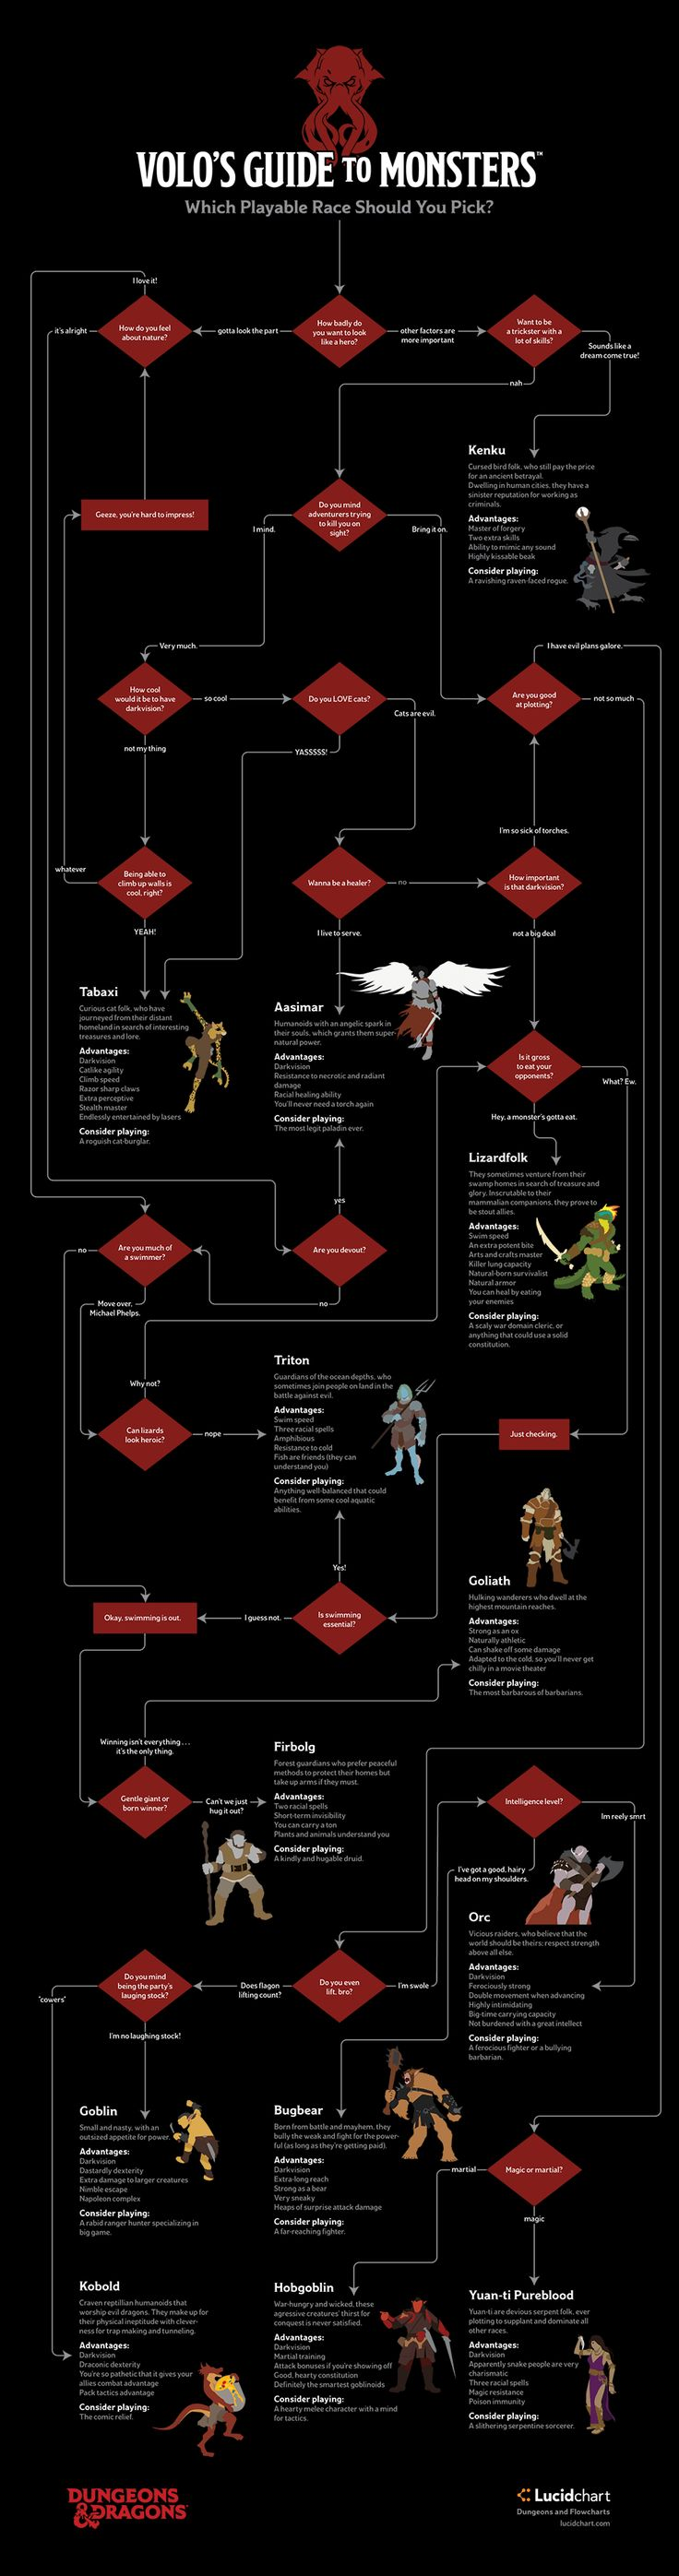 EN World RPG News & Reviews - Volo's Guide to Monsters: Which playable Race Should You Play Flowchart